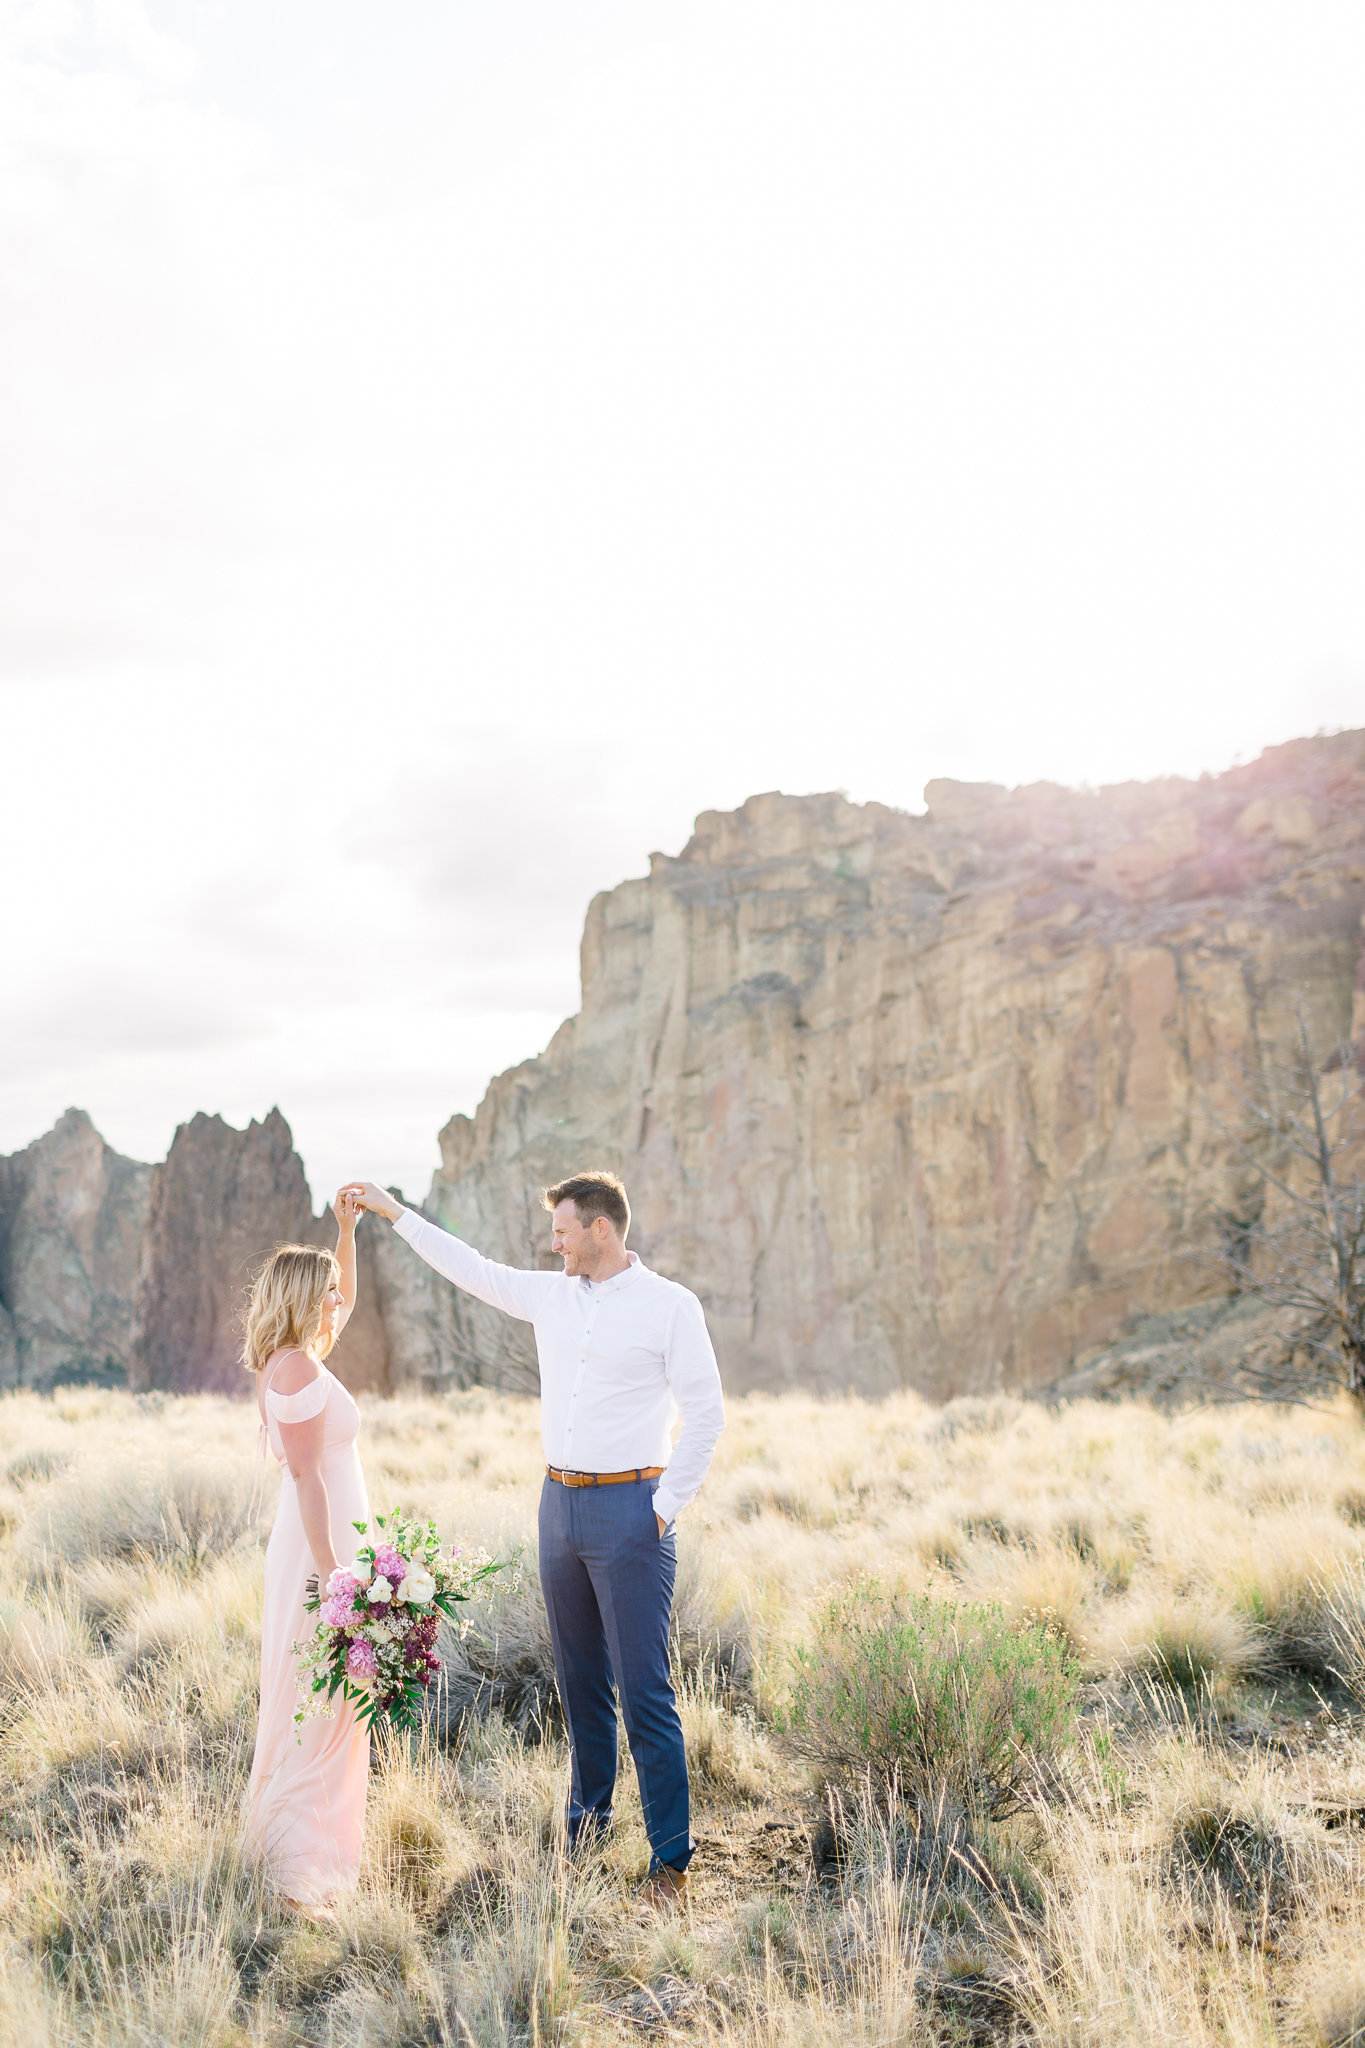 photographe-seance-anniversaire-de-mariage-smith-rock-state-park-oregon-lisa-renault-photographie-wedding-anniversary-session-photographer-33